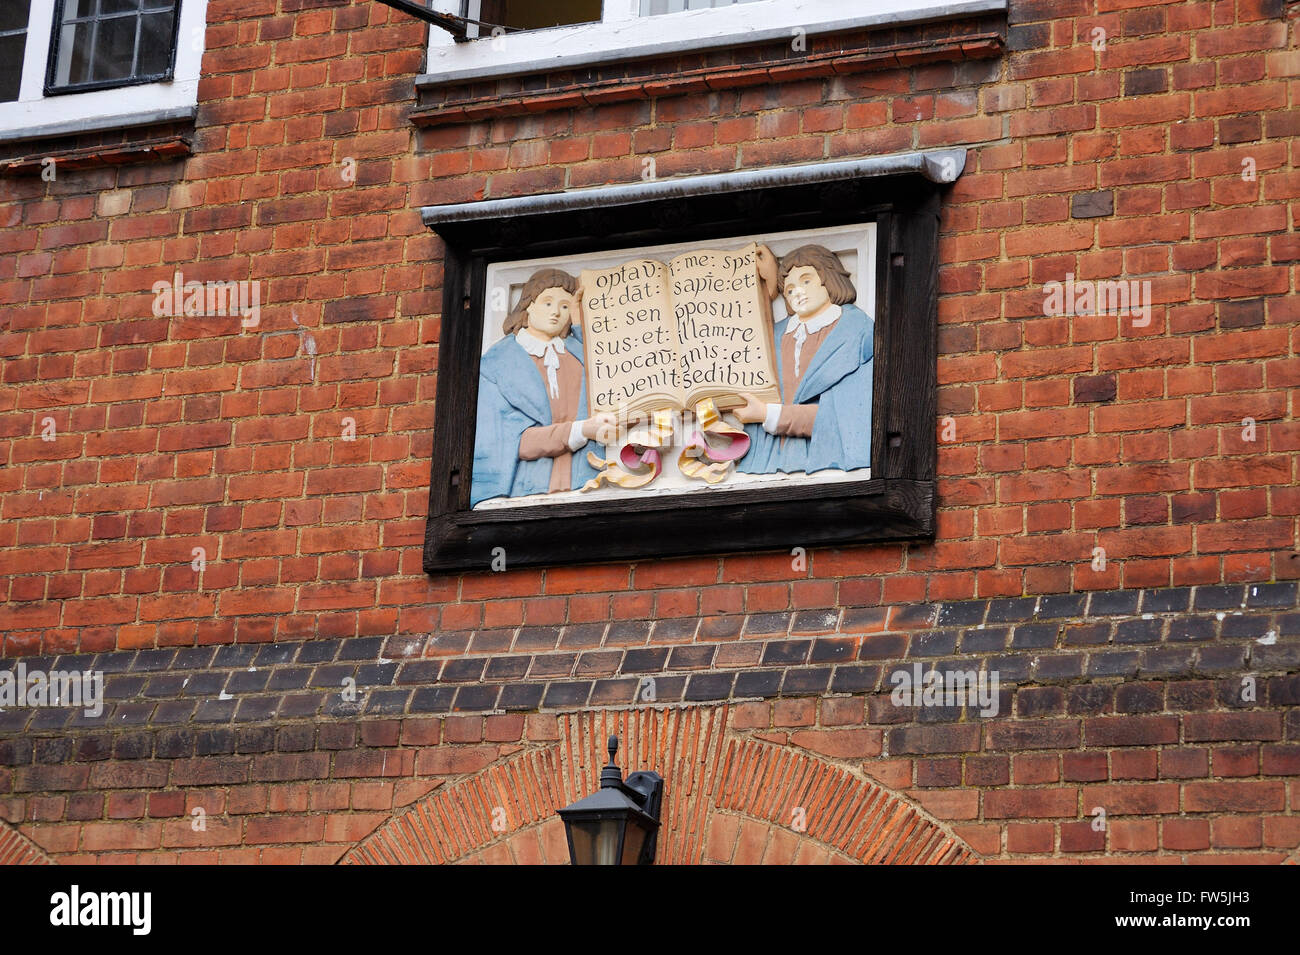 Latin plaque on wall at Eton College, Berkshire, invoking God to grant wisdom and learning - Stock Image